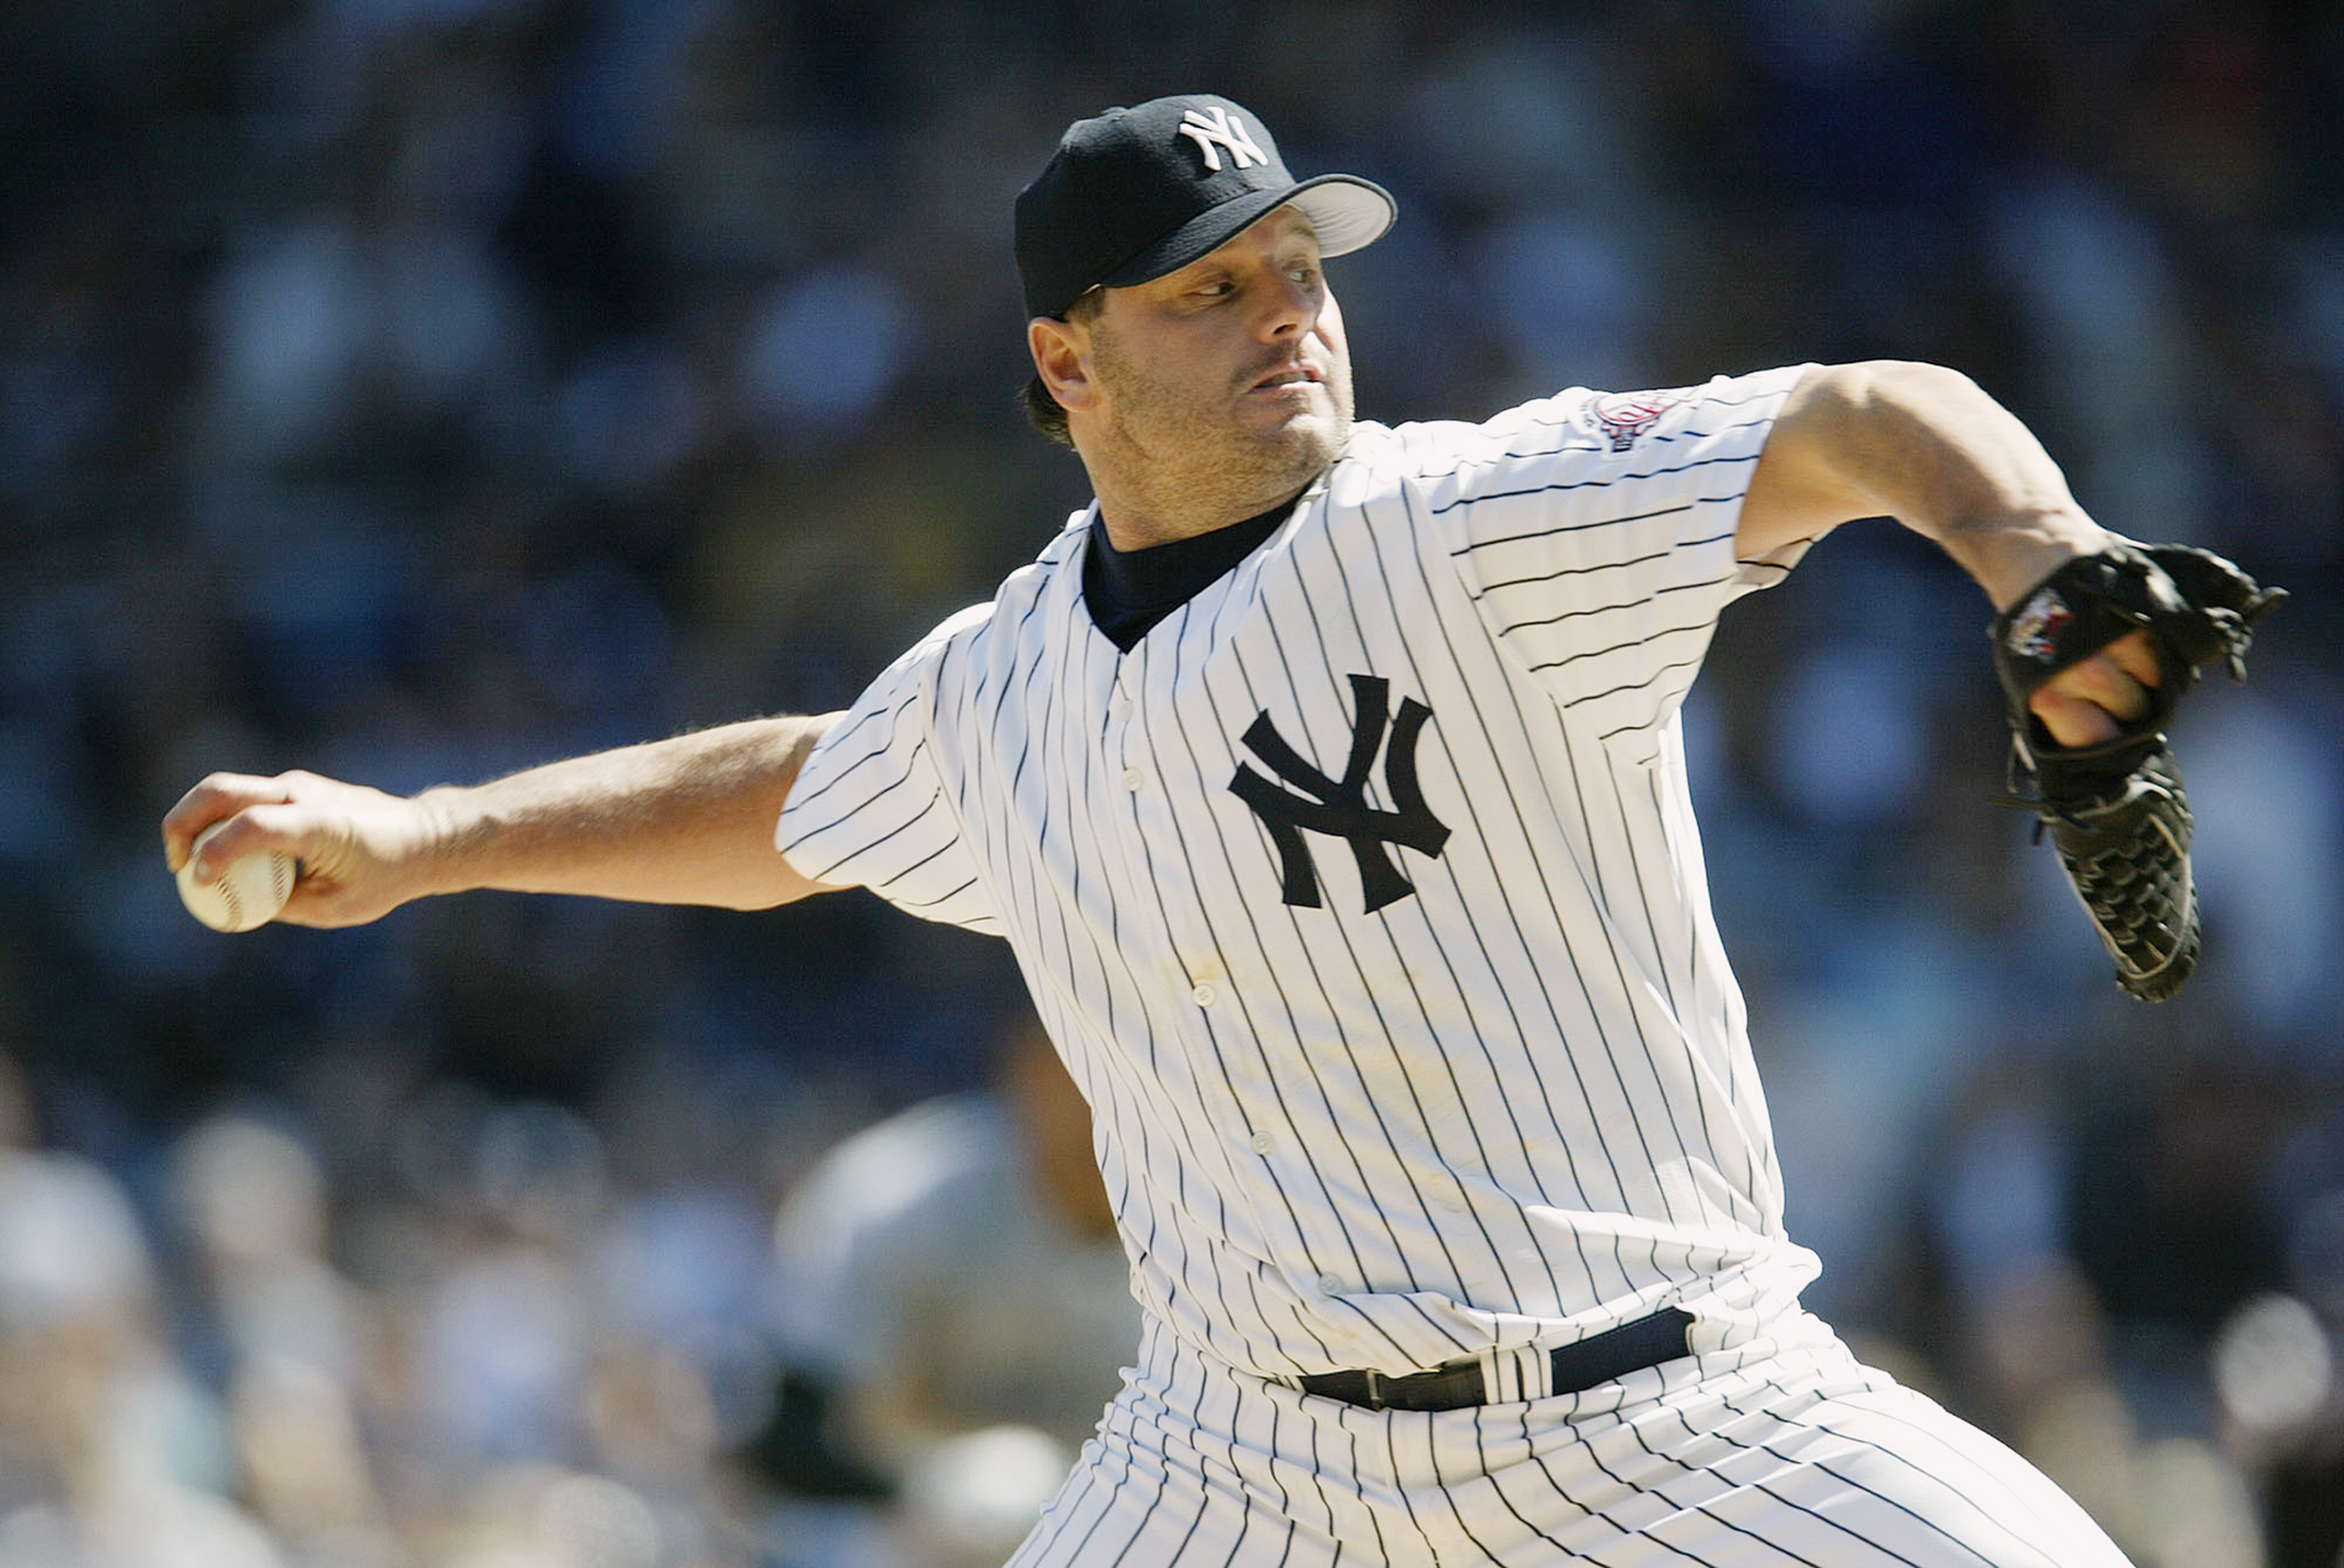 Roger Clemens failed to gain induction to the Baseball Hall of Fame again this year. (Getty Images)